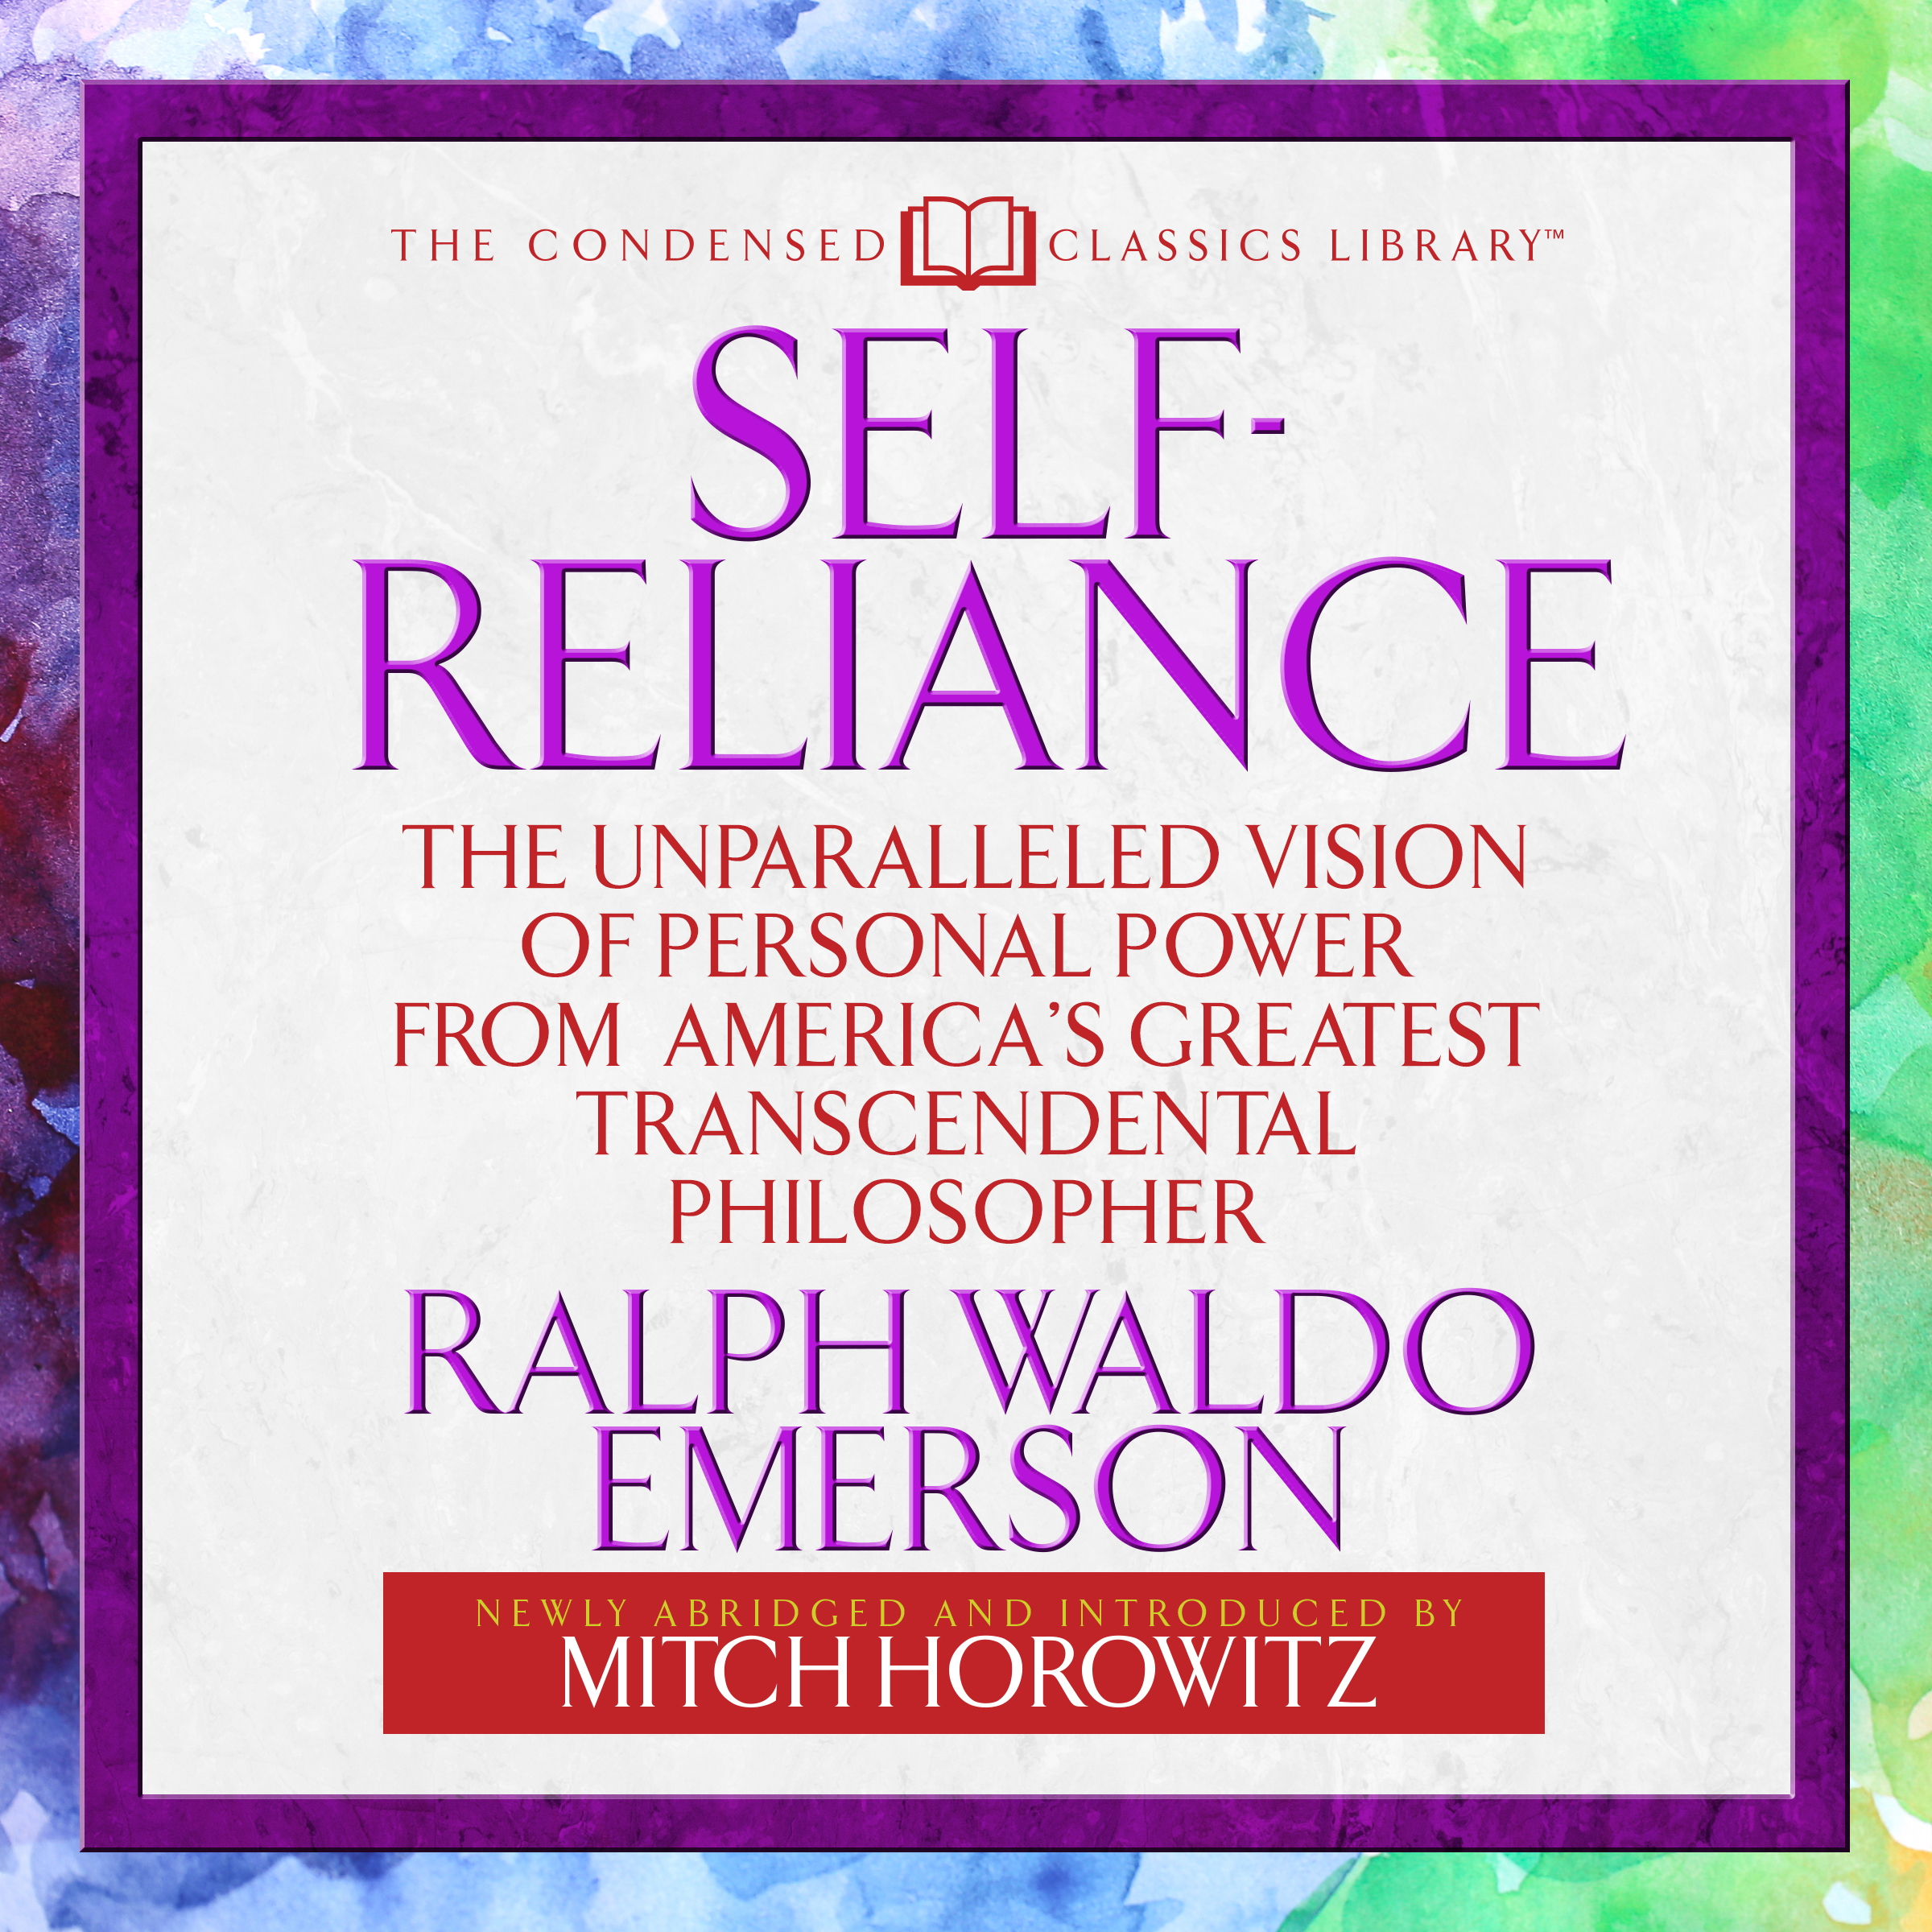 Printable Self-Reliance : The Unparalleled Vision of Personal Power from America's Greatest Transcendental Philosopher Audiobook Cover Art